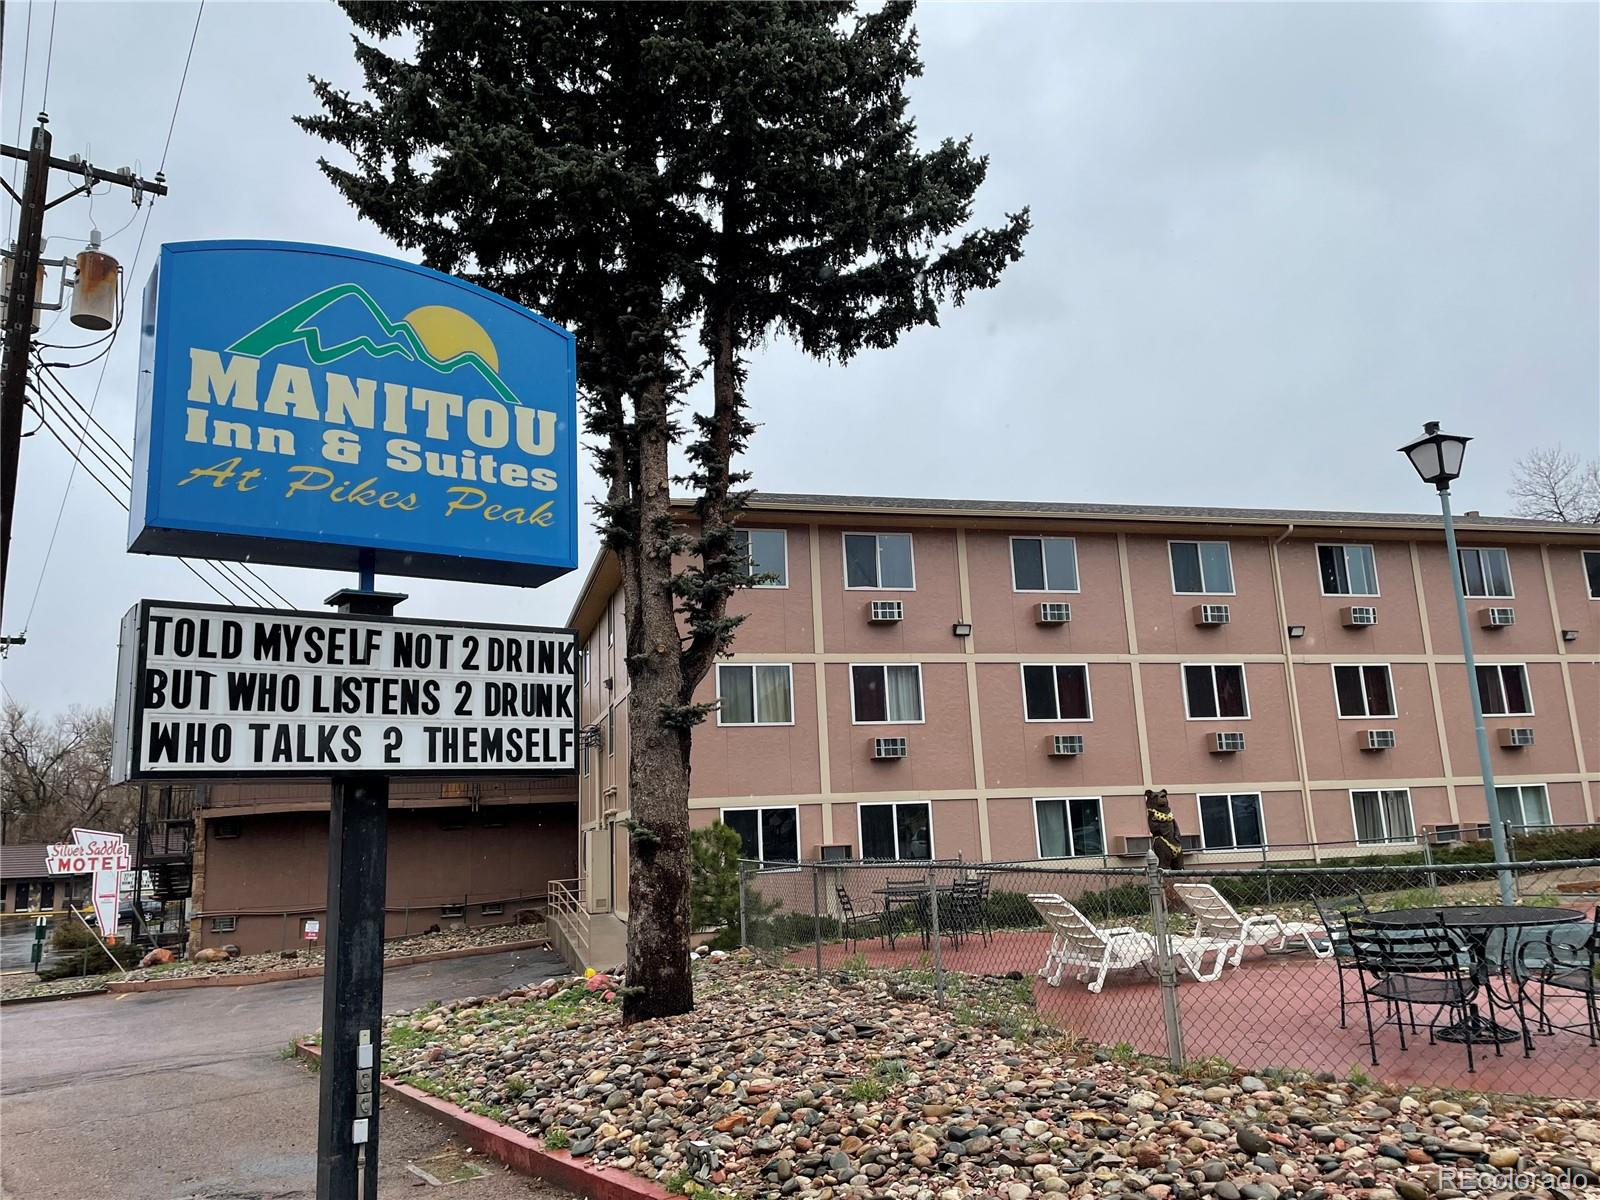 38 Room former Super 8 Motel (229 Manitou Ave) with a single family home (13 Crystal Park Rd) in the same parking lot. Located at a lighted intersection one block away from US Highway 24. Has an outdoor pool and marijuana smoke cabana. All rooms have hardwood or tile flooring. Hotel offers single and double bed rooms, as well as larger suites with single kings, double and triple queens. Weekly rates are offered as well. Currently 85% occupied. Manitou Springs is one of the most desirable places to visit in the Colorado Springs area. Manitou Springs is at the foot of Pikes Peak and is the first town you pass on a popular route to Colorado's biggest ski resorts. Manitou offers quaint small town living and close proximity to the convenience of the city (grocery stores, hospitals, etc.). Manitou is home to many attractions including the popular Incline and Garden of the Gods, an old-school arcade, breweries, great food and plenty of hiking. Manitou Springs is also the only city within a 50 mile radius where recreational marijuana is legal, with the only two dispensaries walking distance from Manitou Inn & Suites.